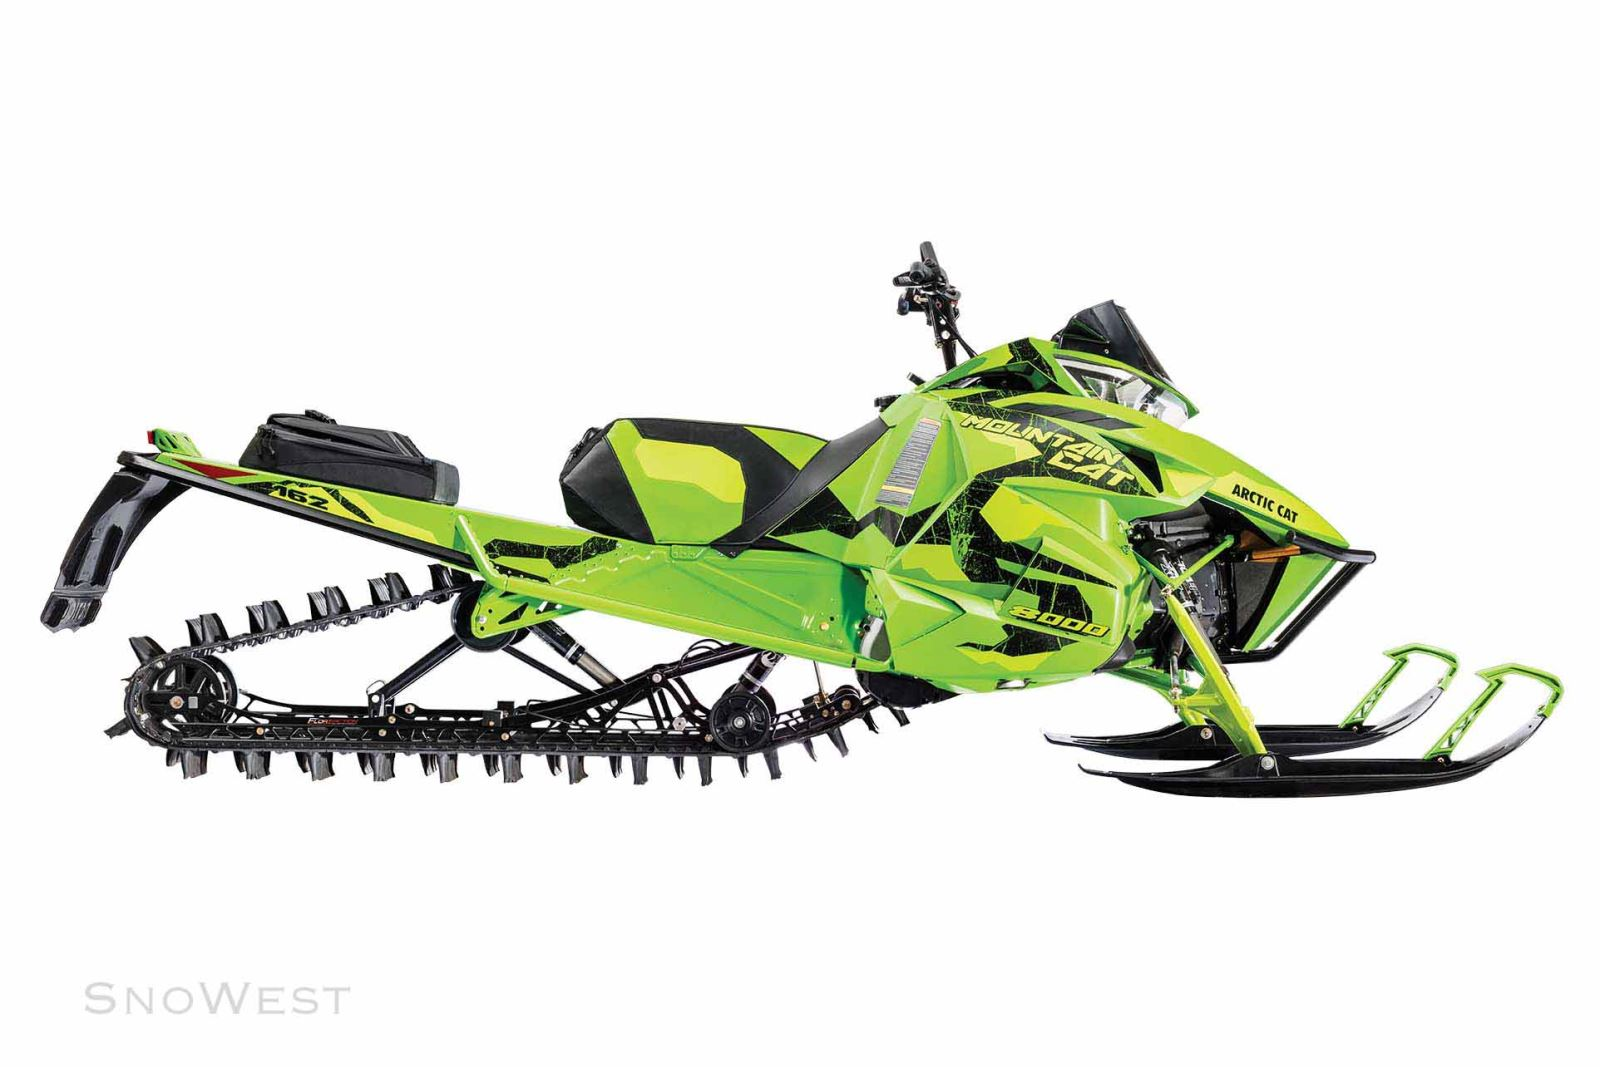 2018 Arctic Cat Sleds >> Arctic Cat 2017: Everything You Need to Know About the 2017 Mountain Cat   Snowest Magazine